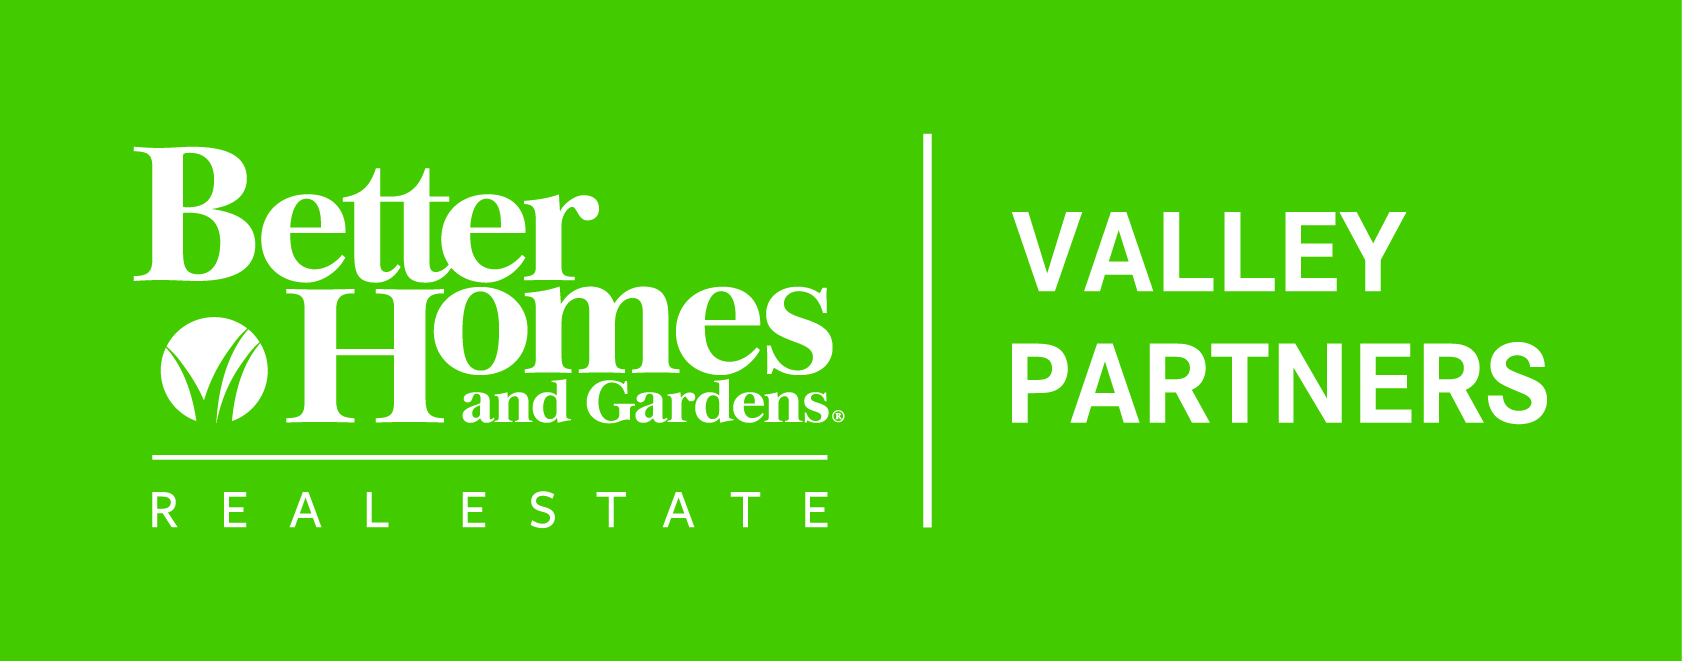 Better Homes and Gardens Real Estate Valley Partners